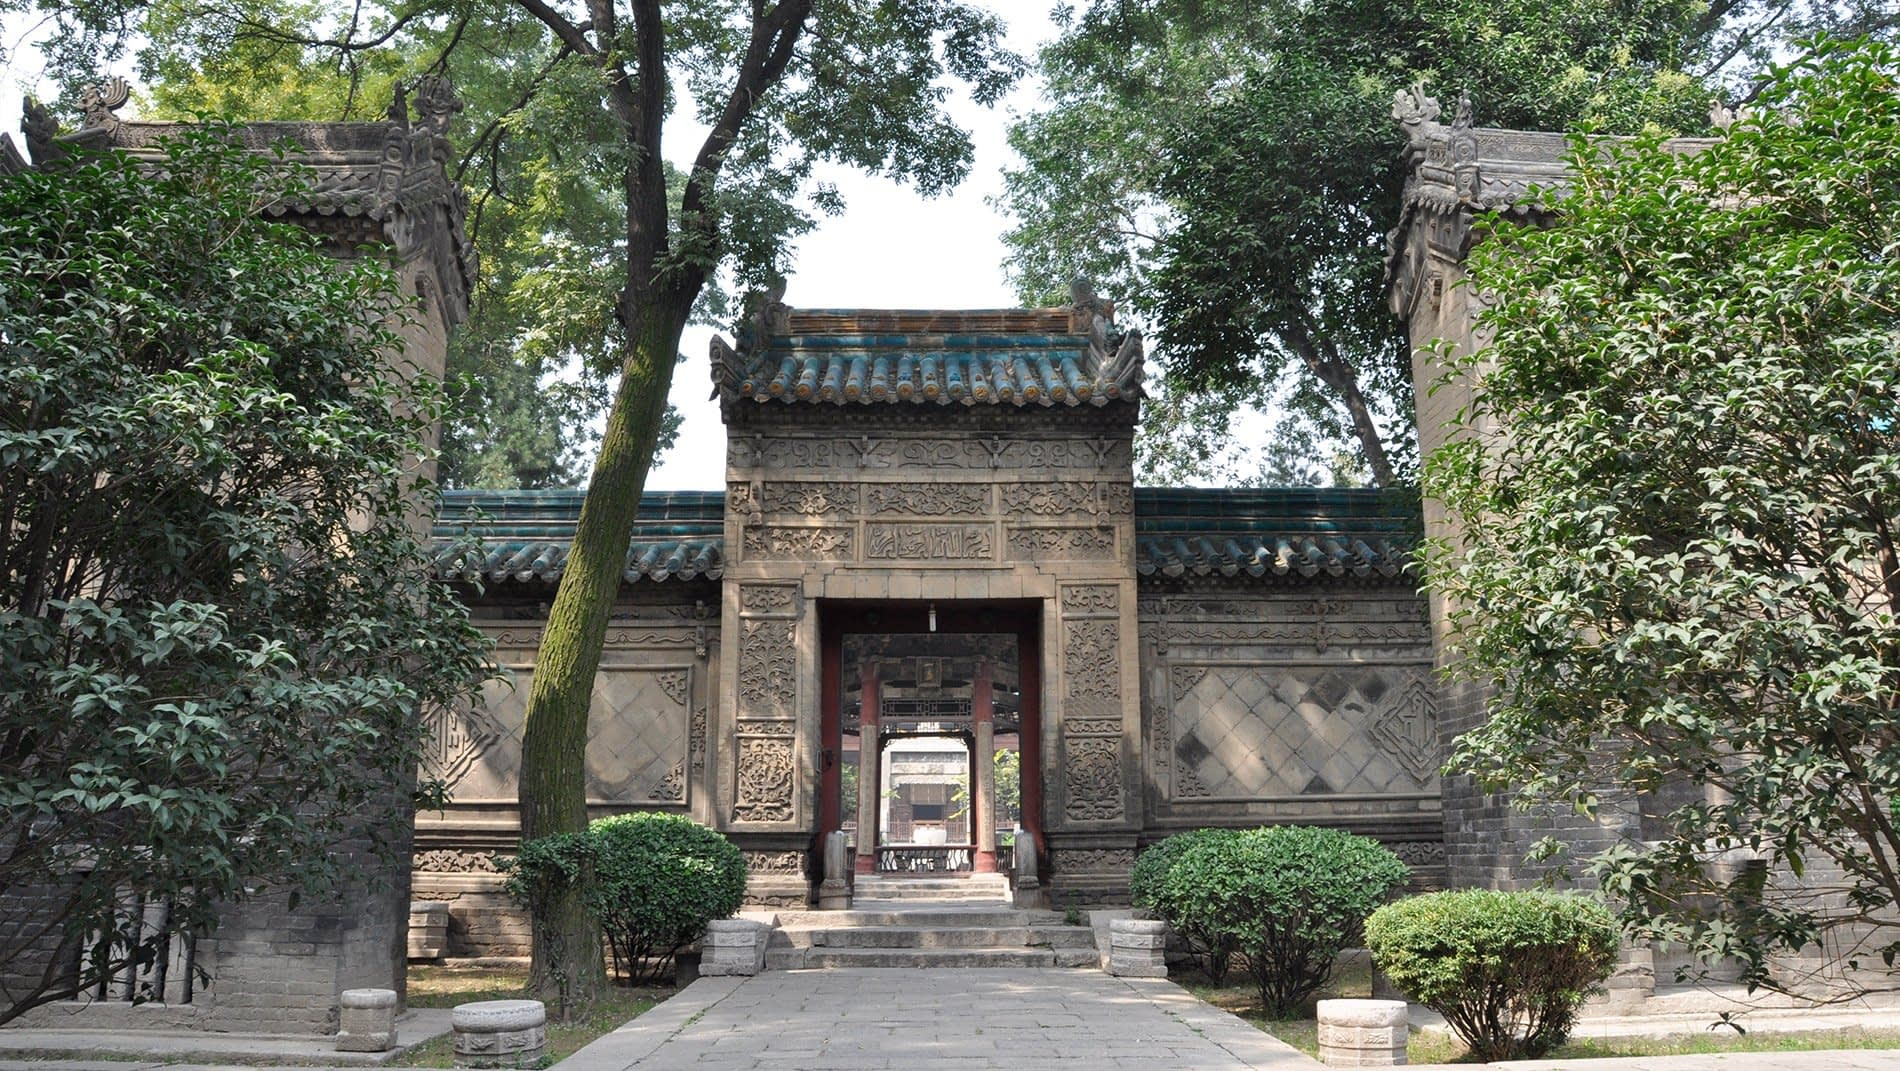 Great Mosque & Muslim Quarter~Xi'an's Muslim community is descended from the Arab Muslims who ventured here along the silk road in the fourth century. They helped create one of the world's first multicultural cities and are proud of their long history in China.